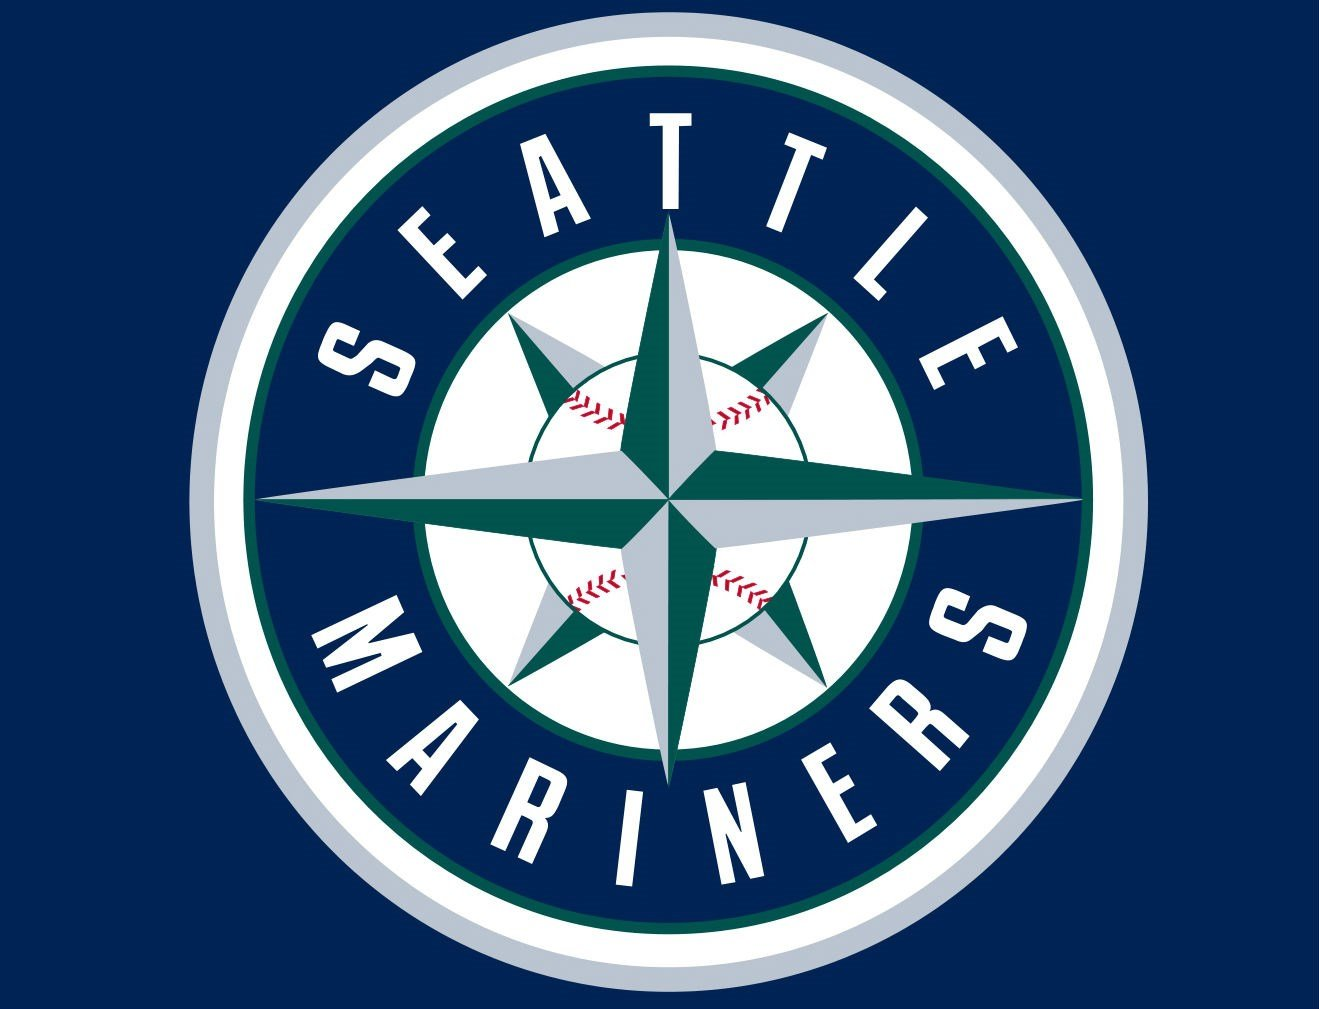 Mariners get 16 hits in 10-9 win over Phillies